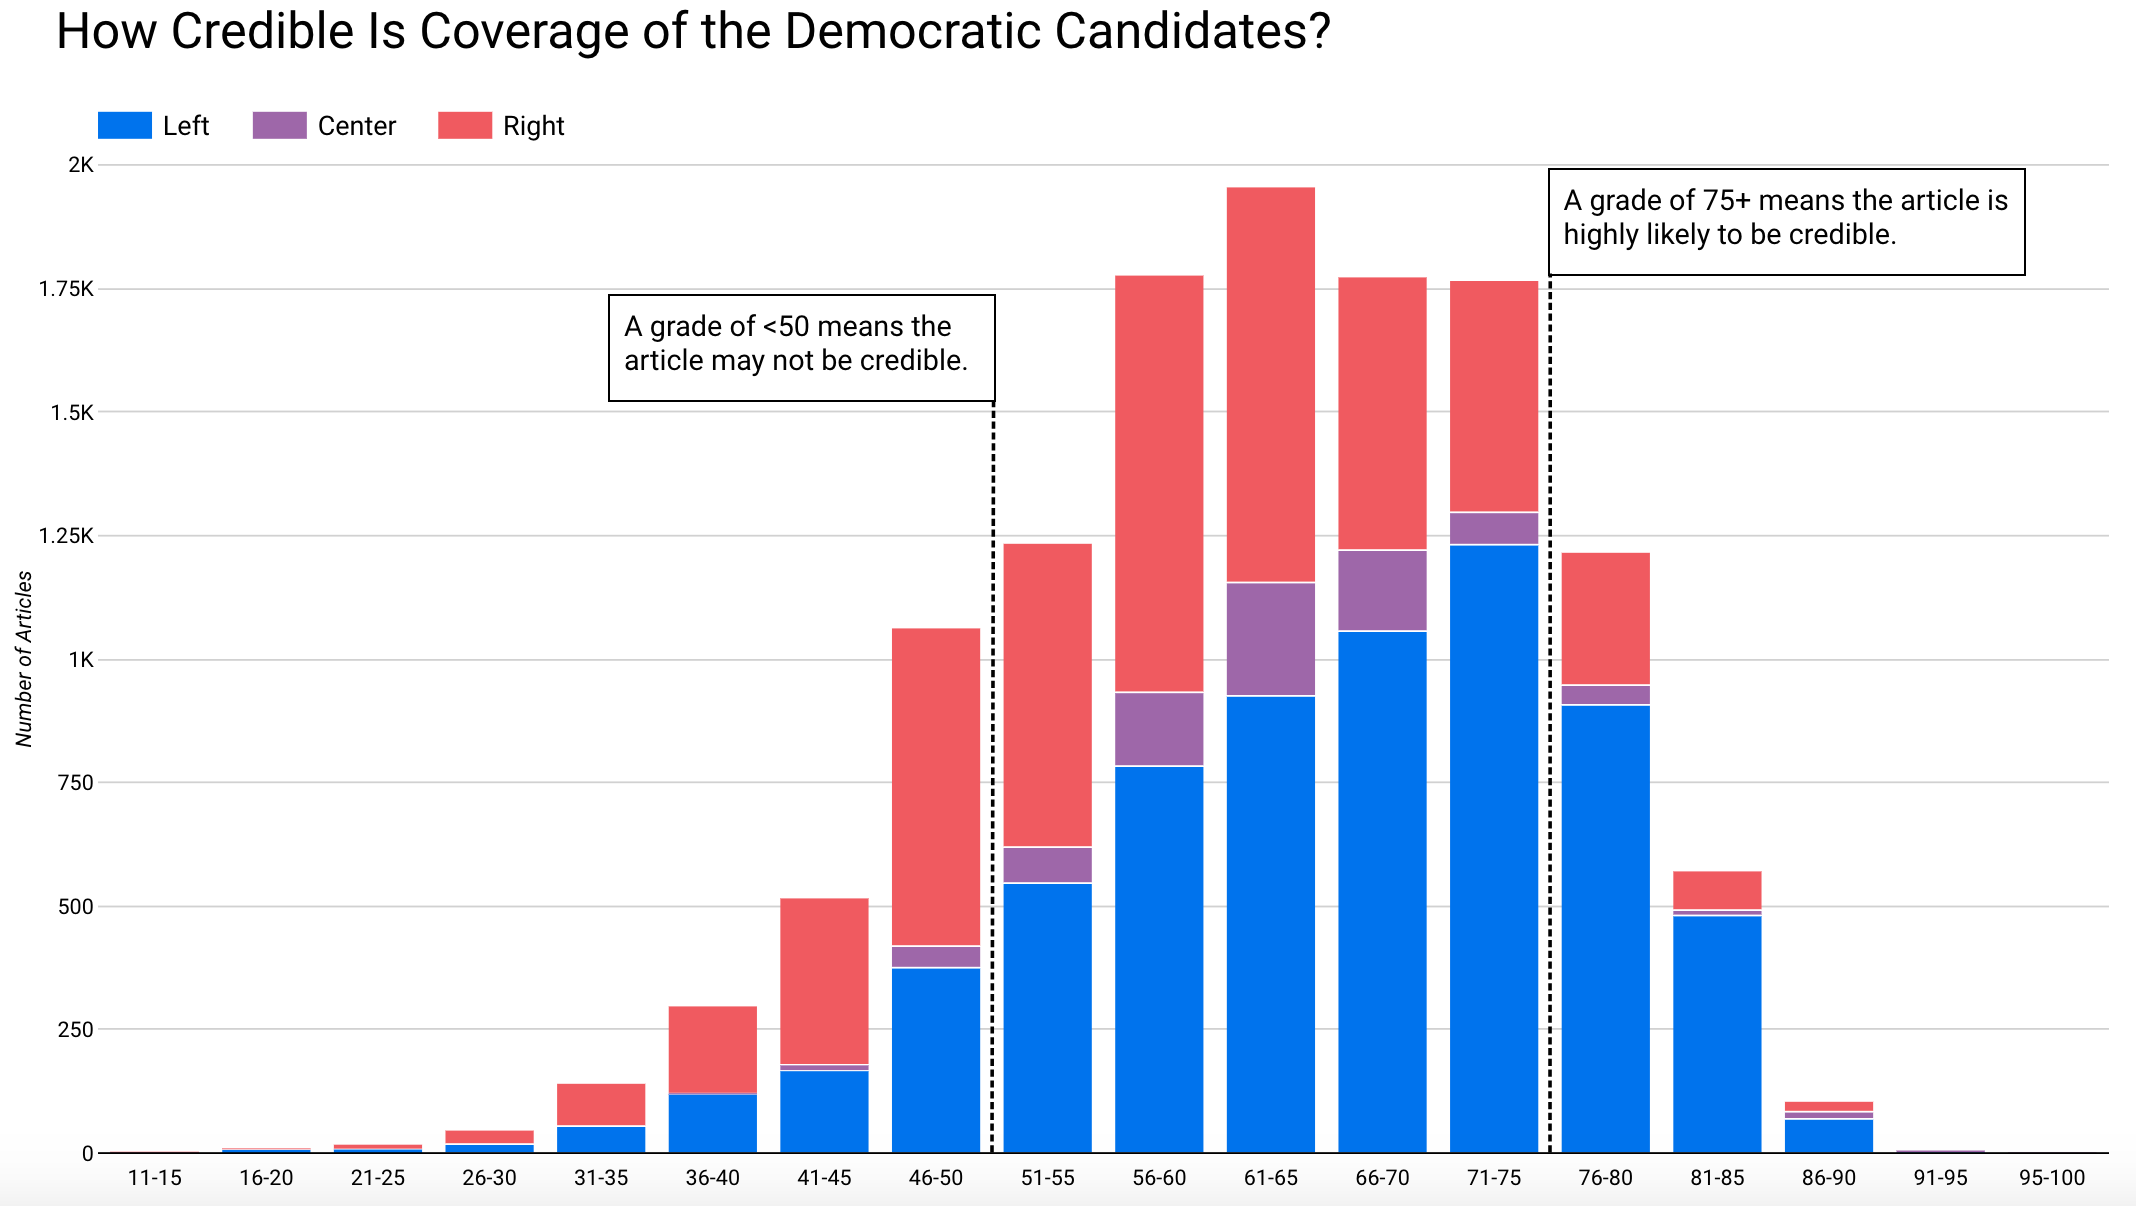 Article Credibility 2020 Presidential Candidates